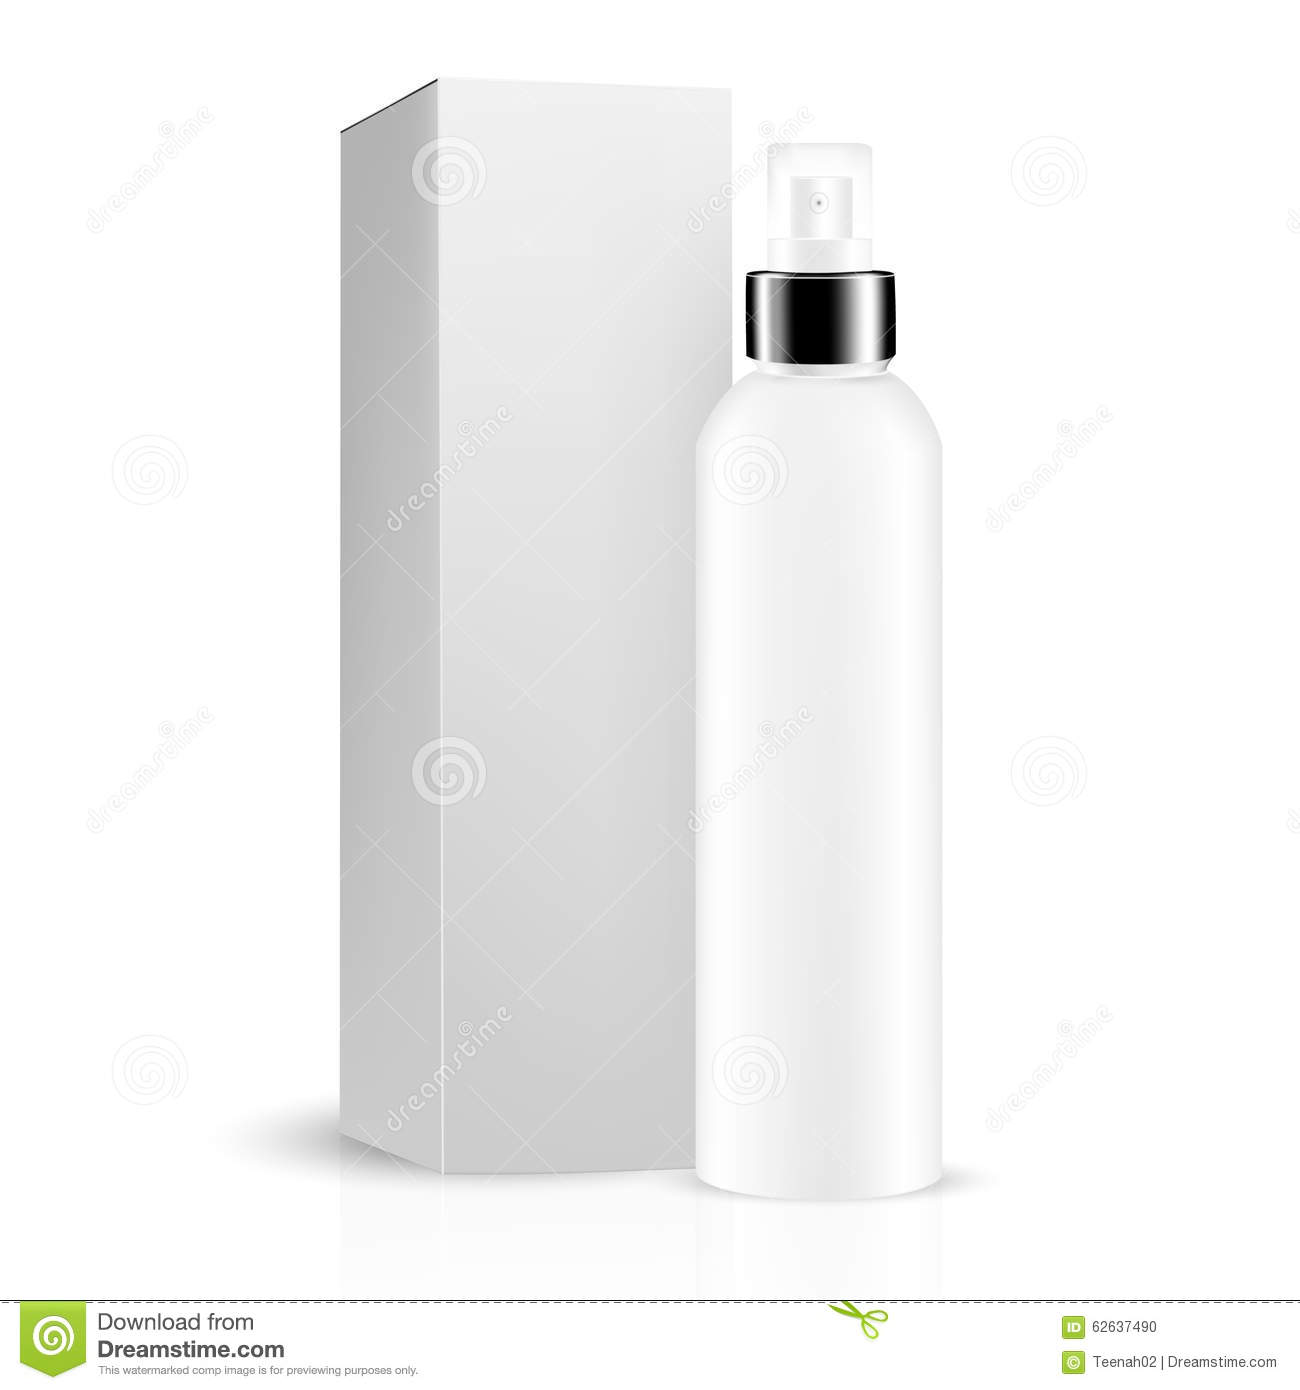 cologne box template - white gray round bottle sprayer with black lid box